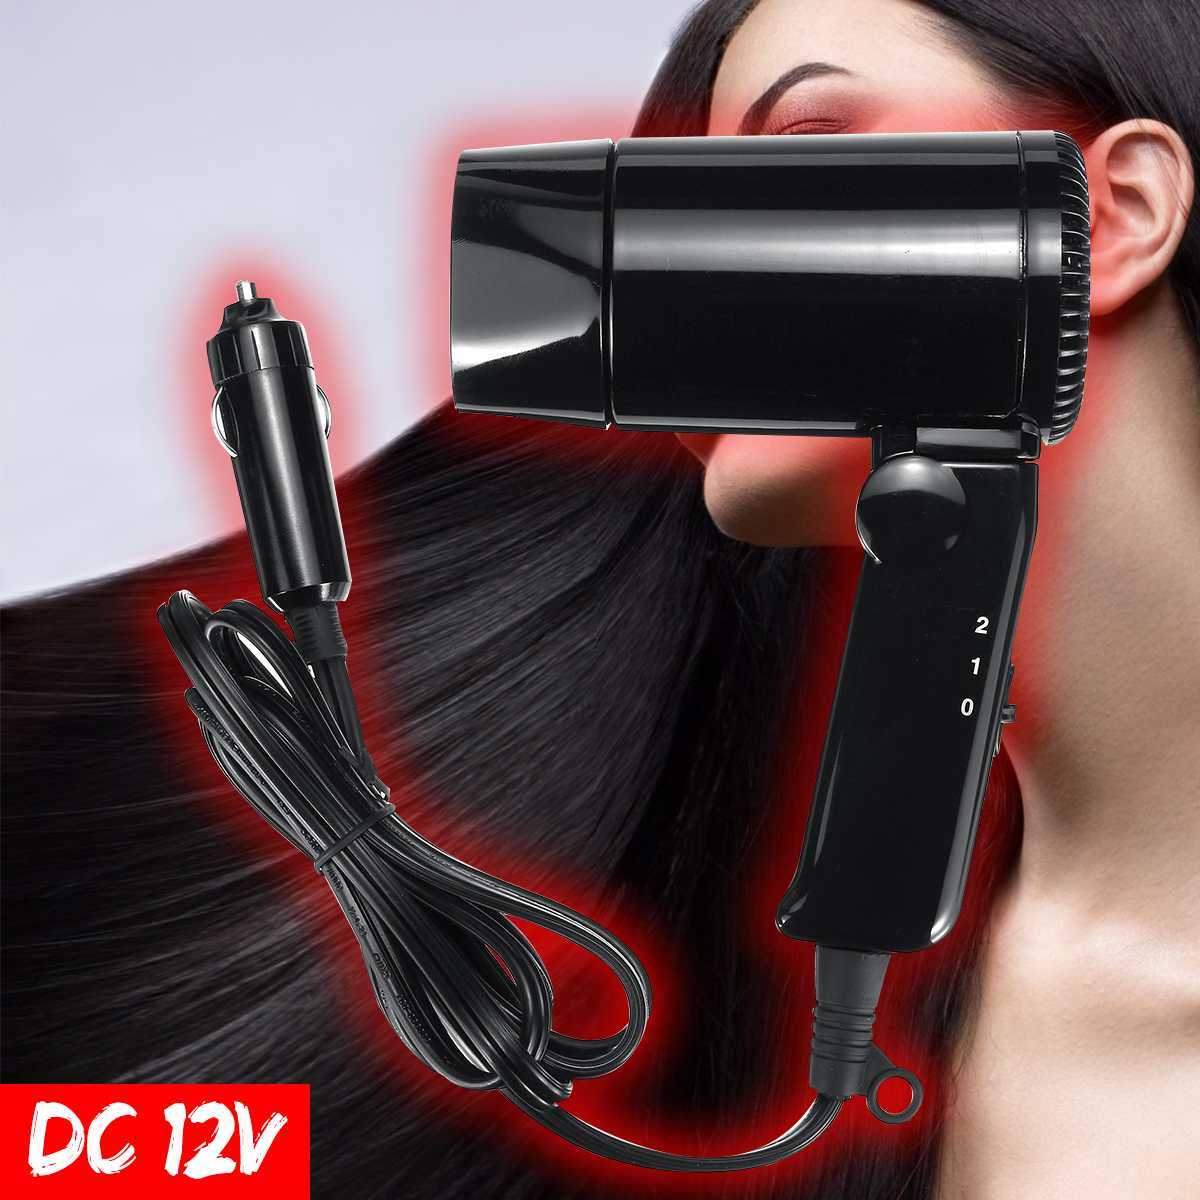 800W DC 12V Car Folding Hair Dryer Portable Electric Hair Dryer Hairdressing Tool Vehicle Mini Blower Outdoor Travel Camping